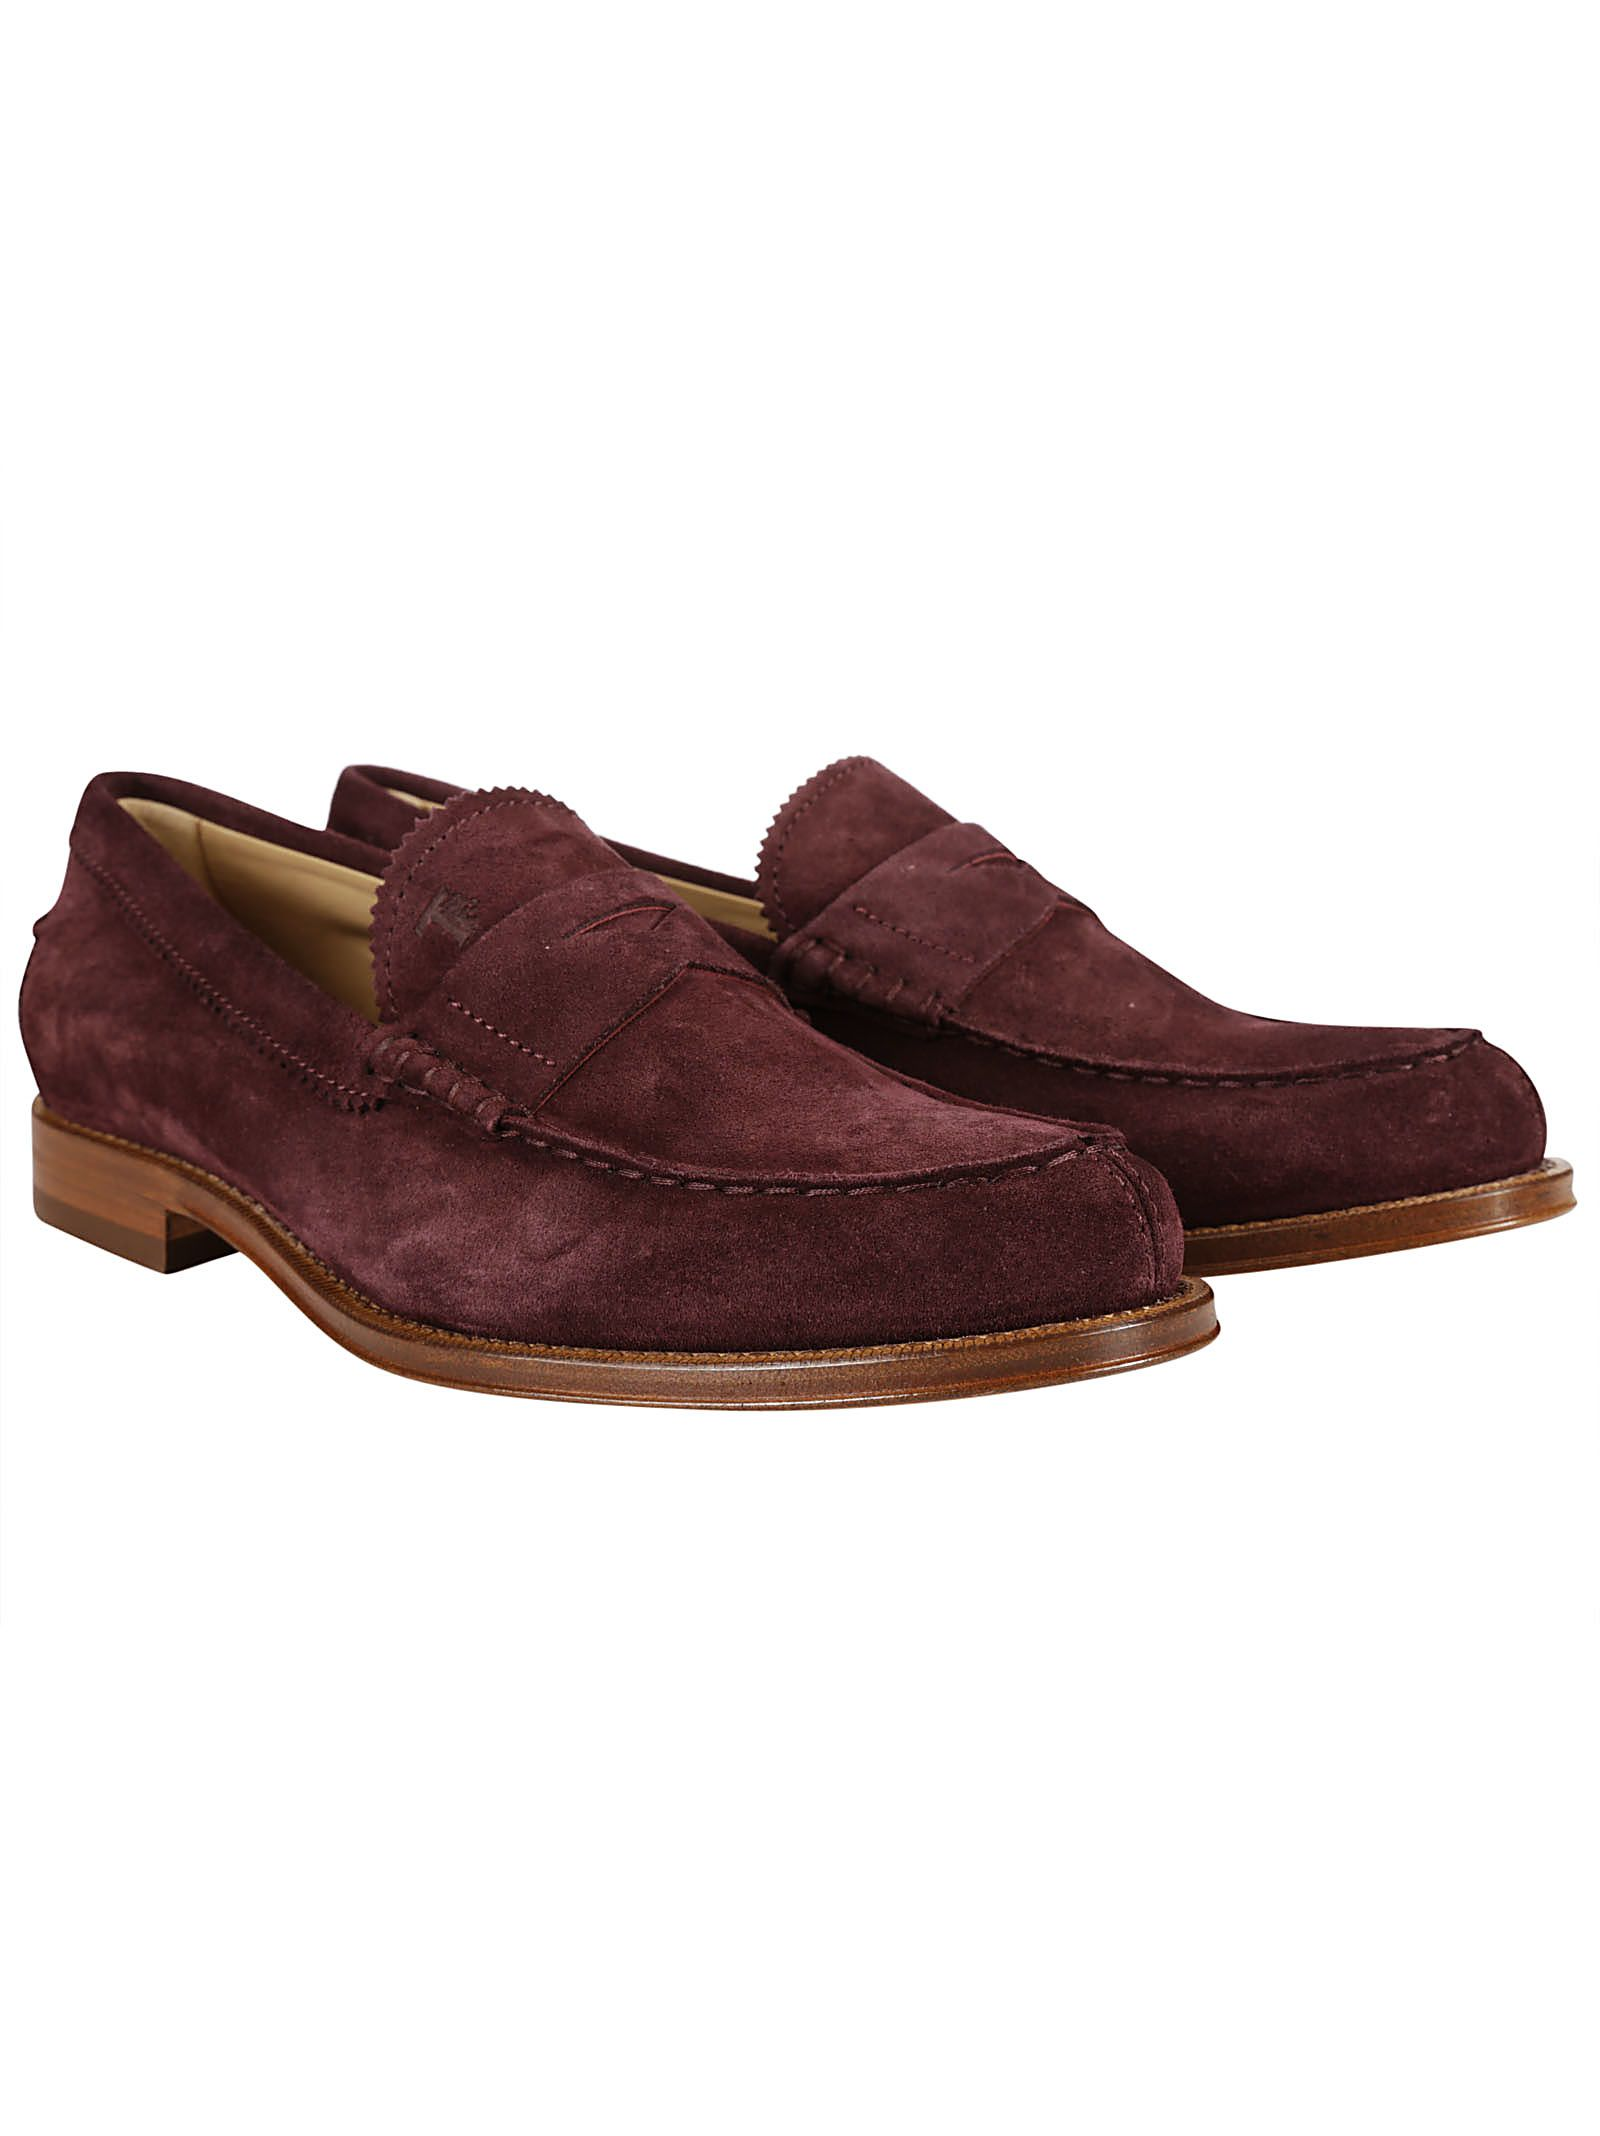 Tods Classic Penny Loafers XXM0RO00640RER807